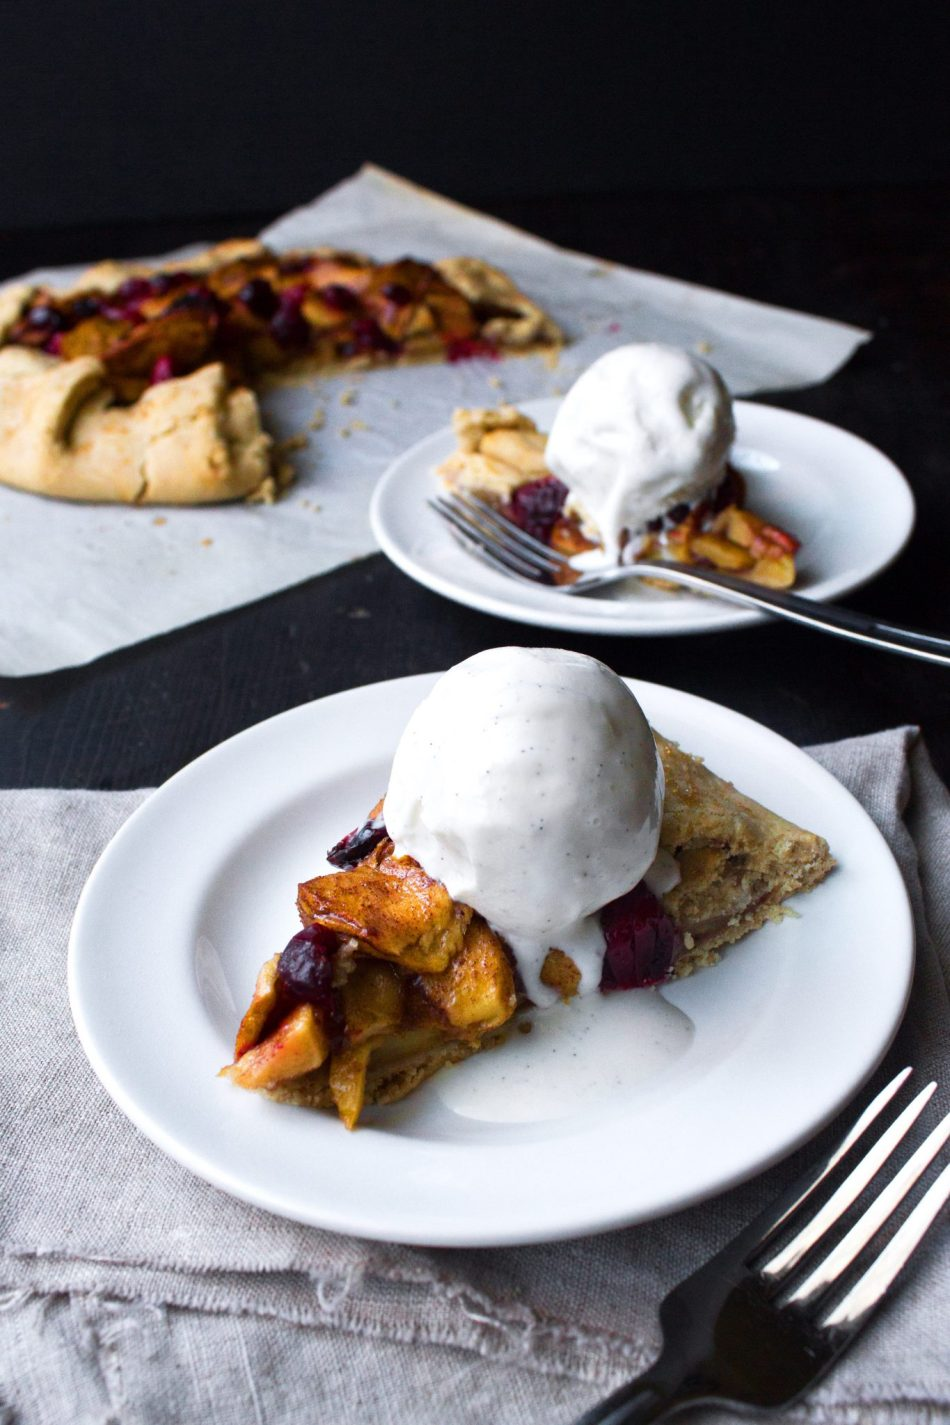 Apple-Cranberry Galette | GF & Refined Sugar Free. Can also use ready made pie crust for a quick and impressive dessert!